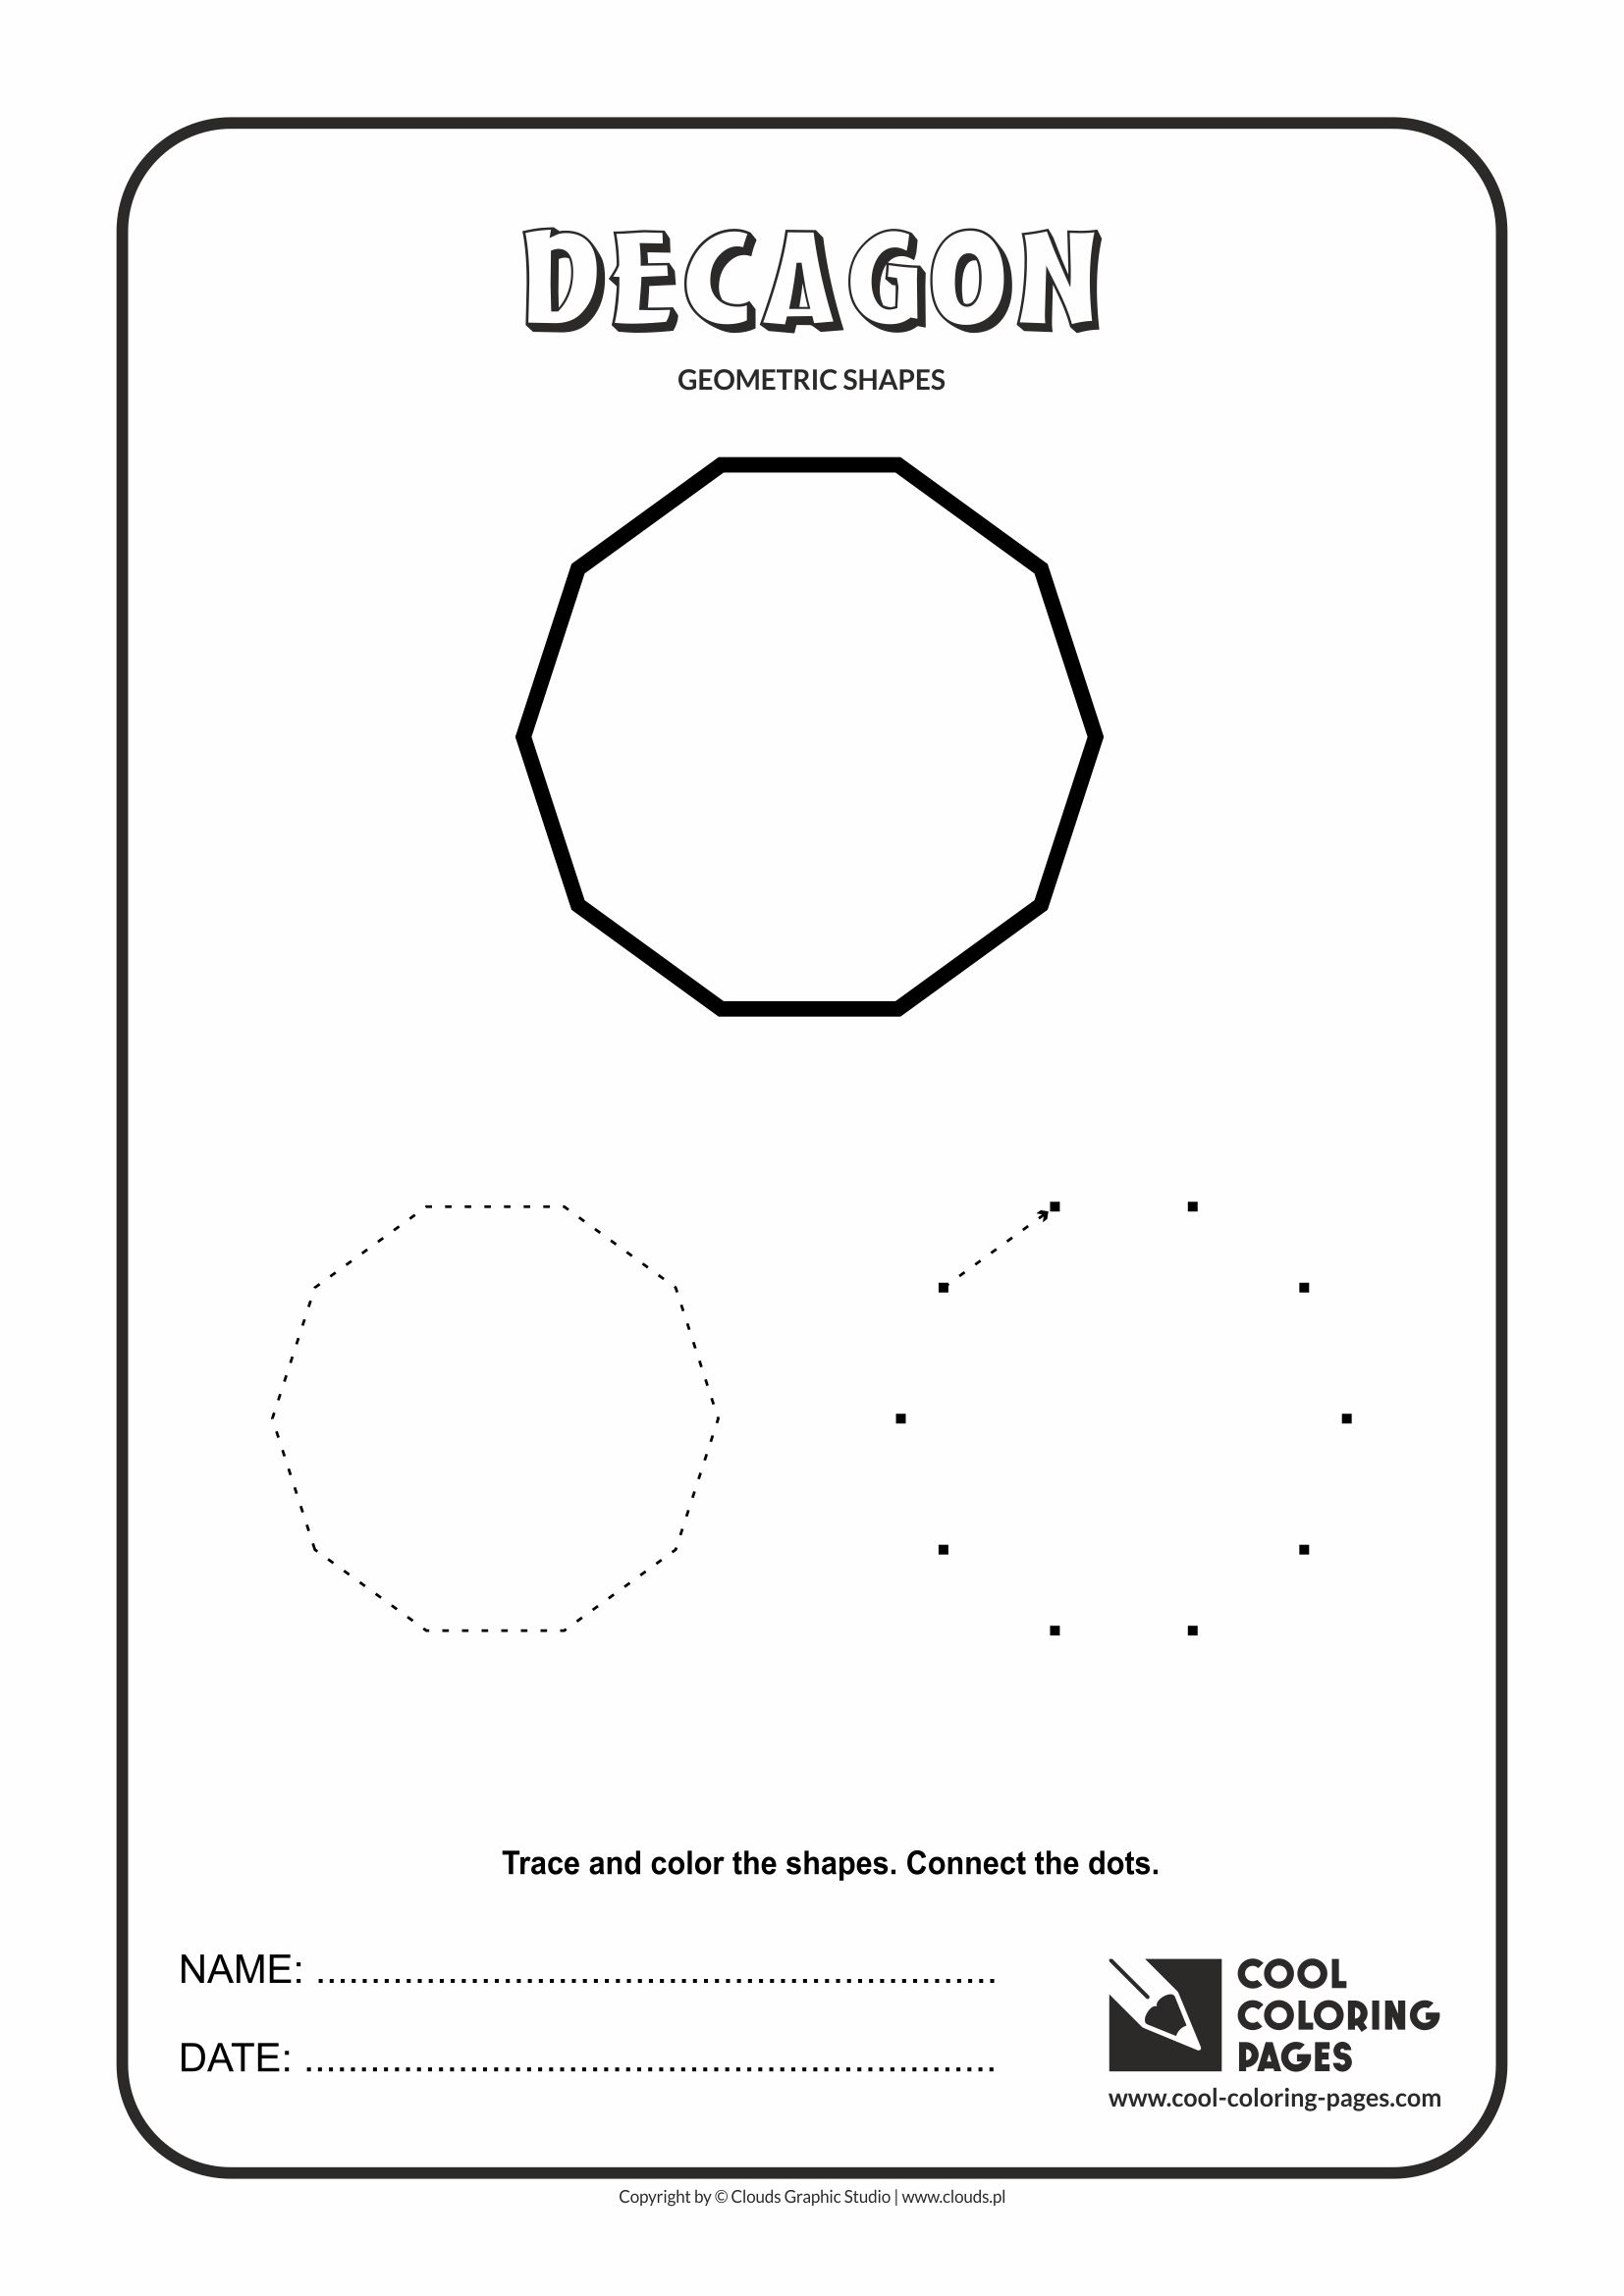 Cool Coloring Pages - Geometric shapes / Decagon